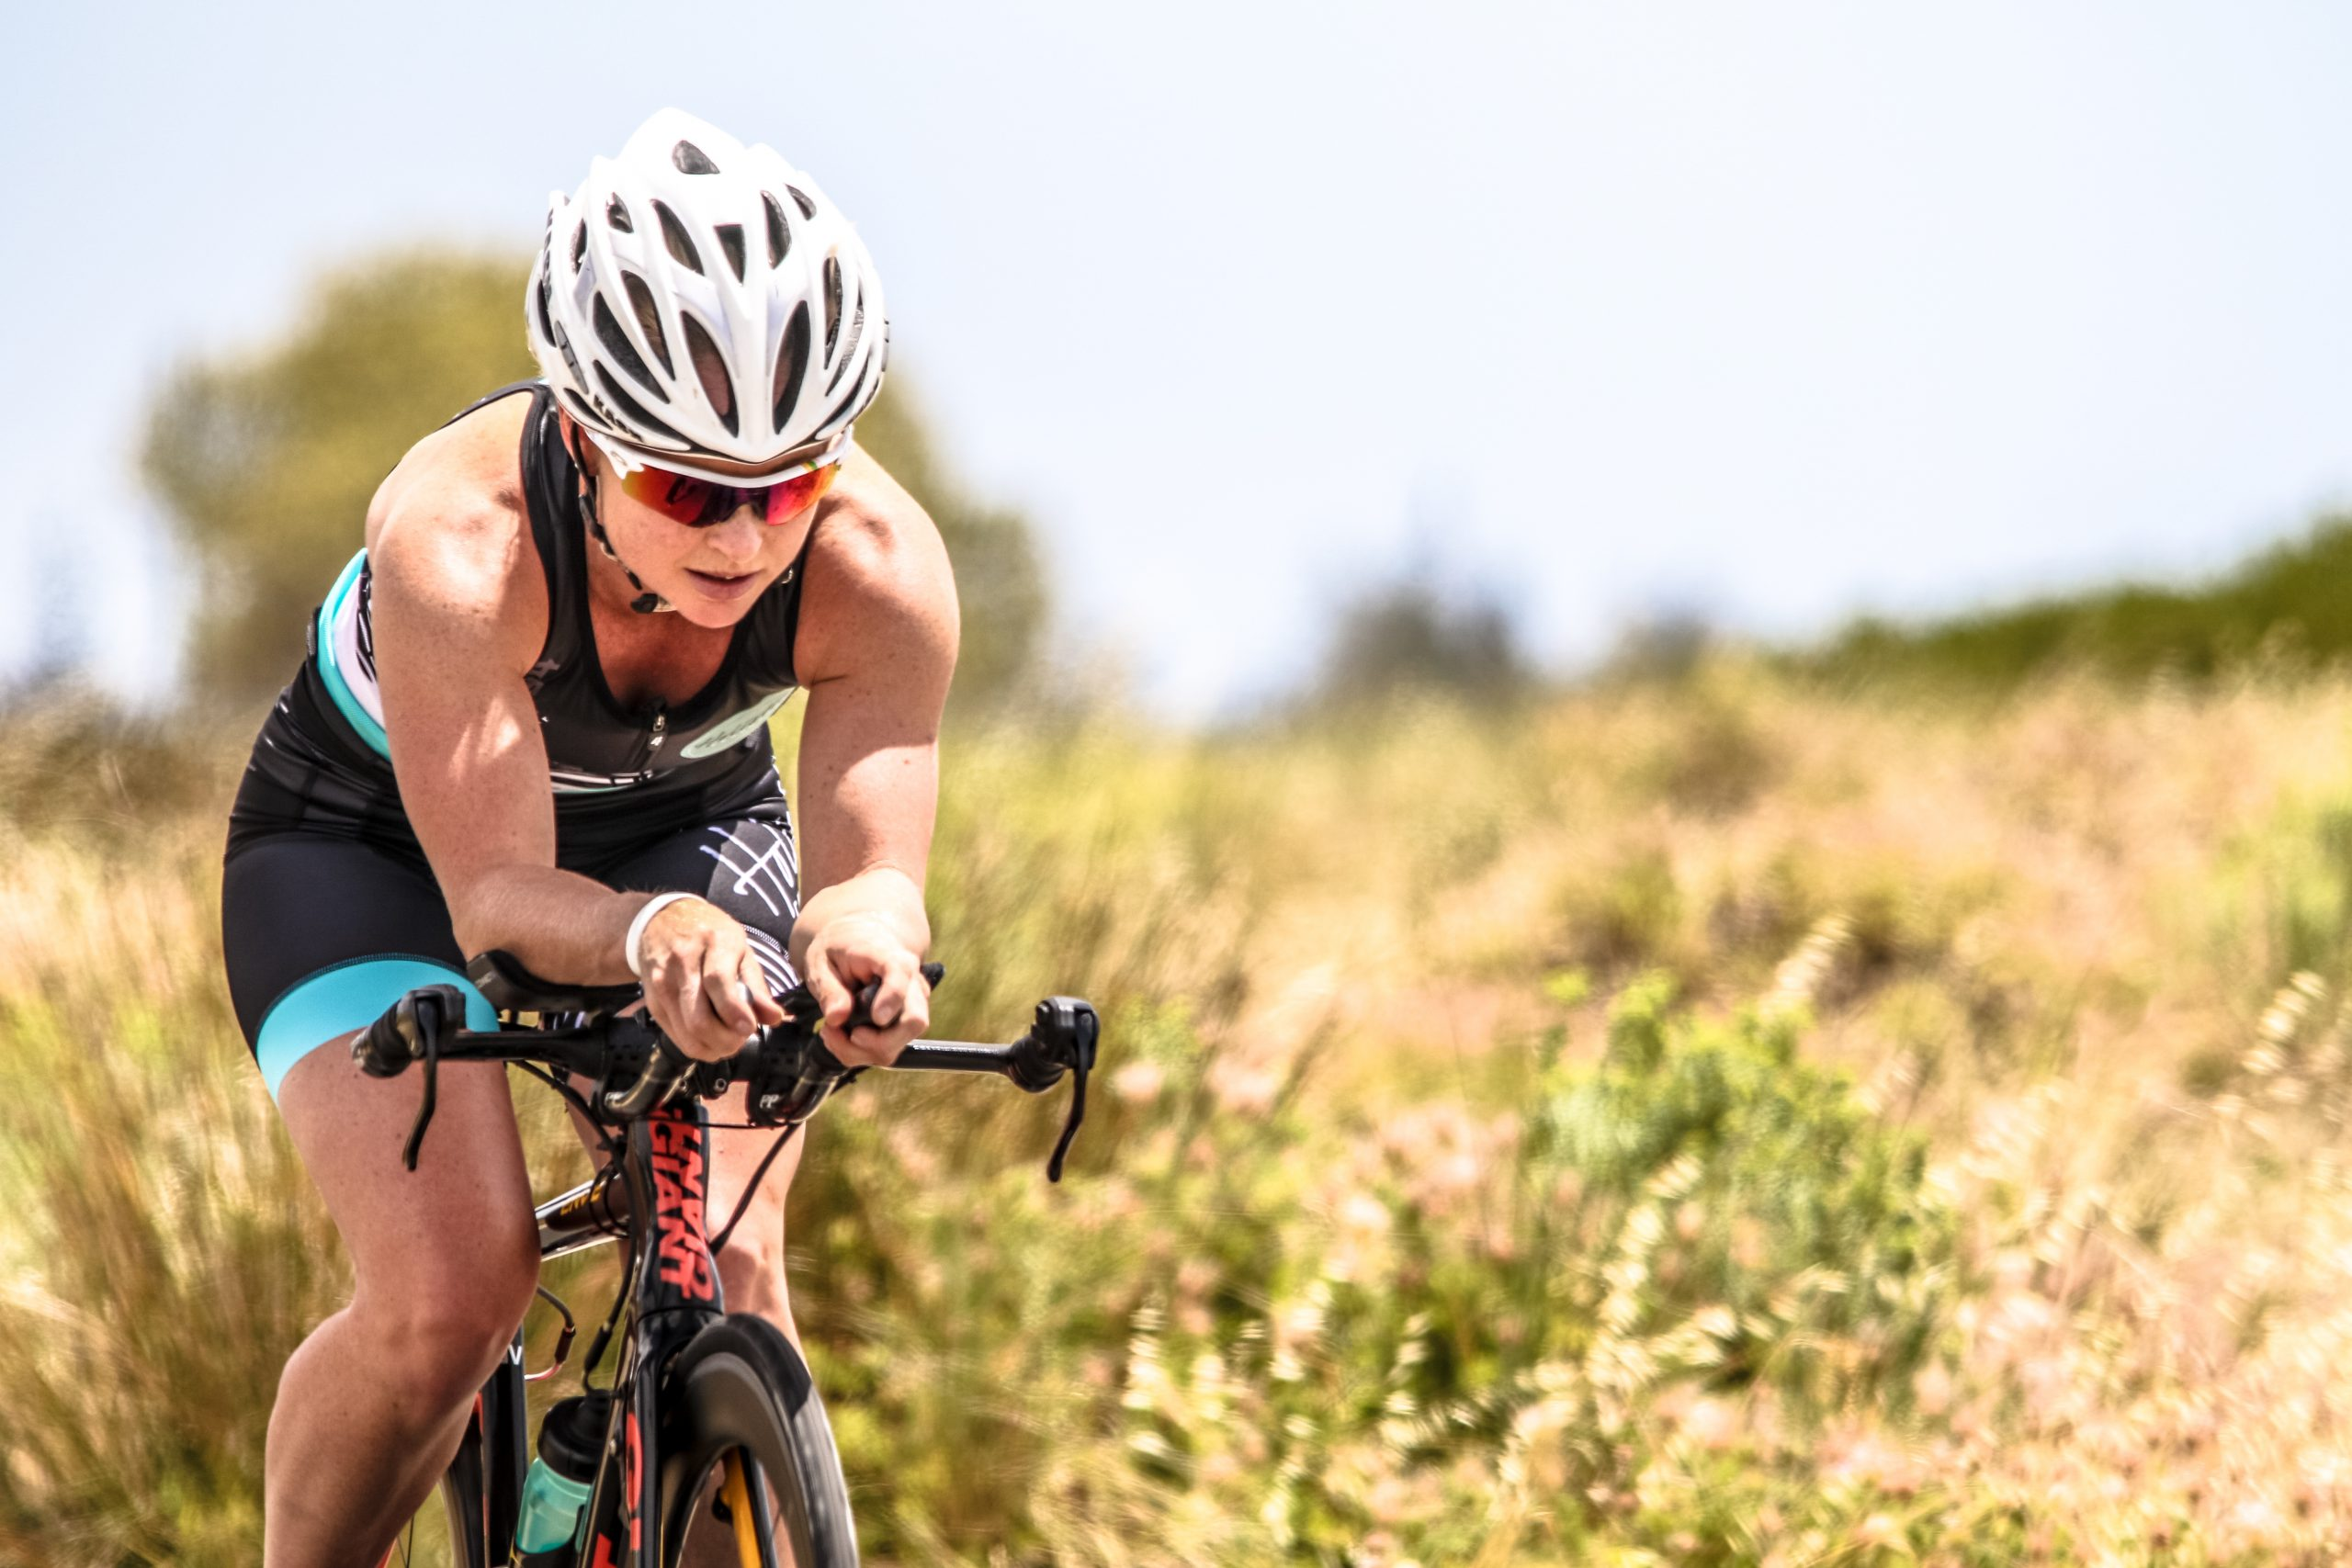 What is athlete self confidence and how can it be fostered?